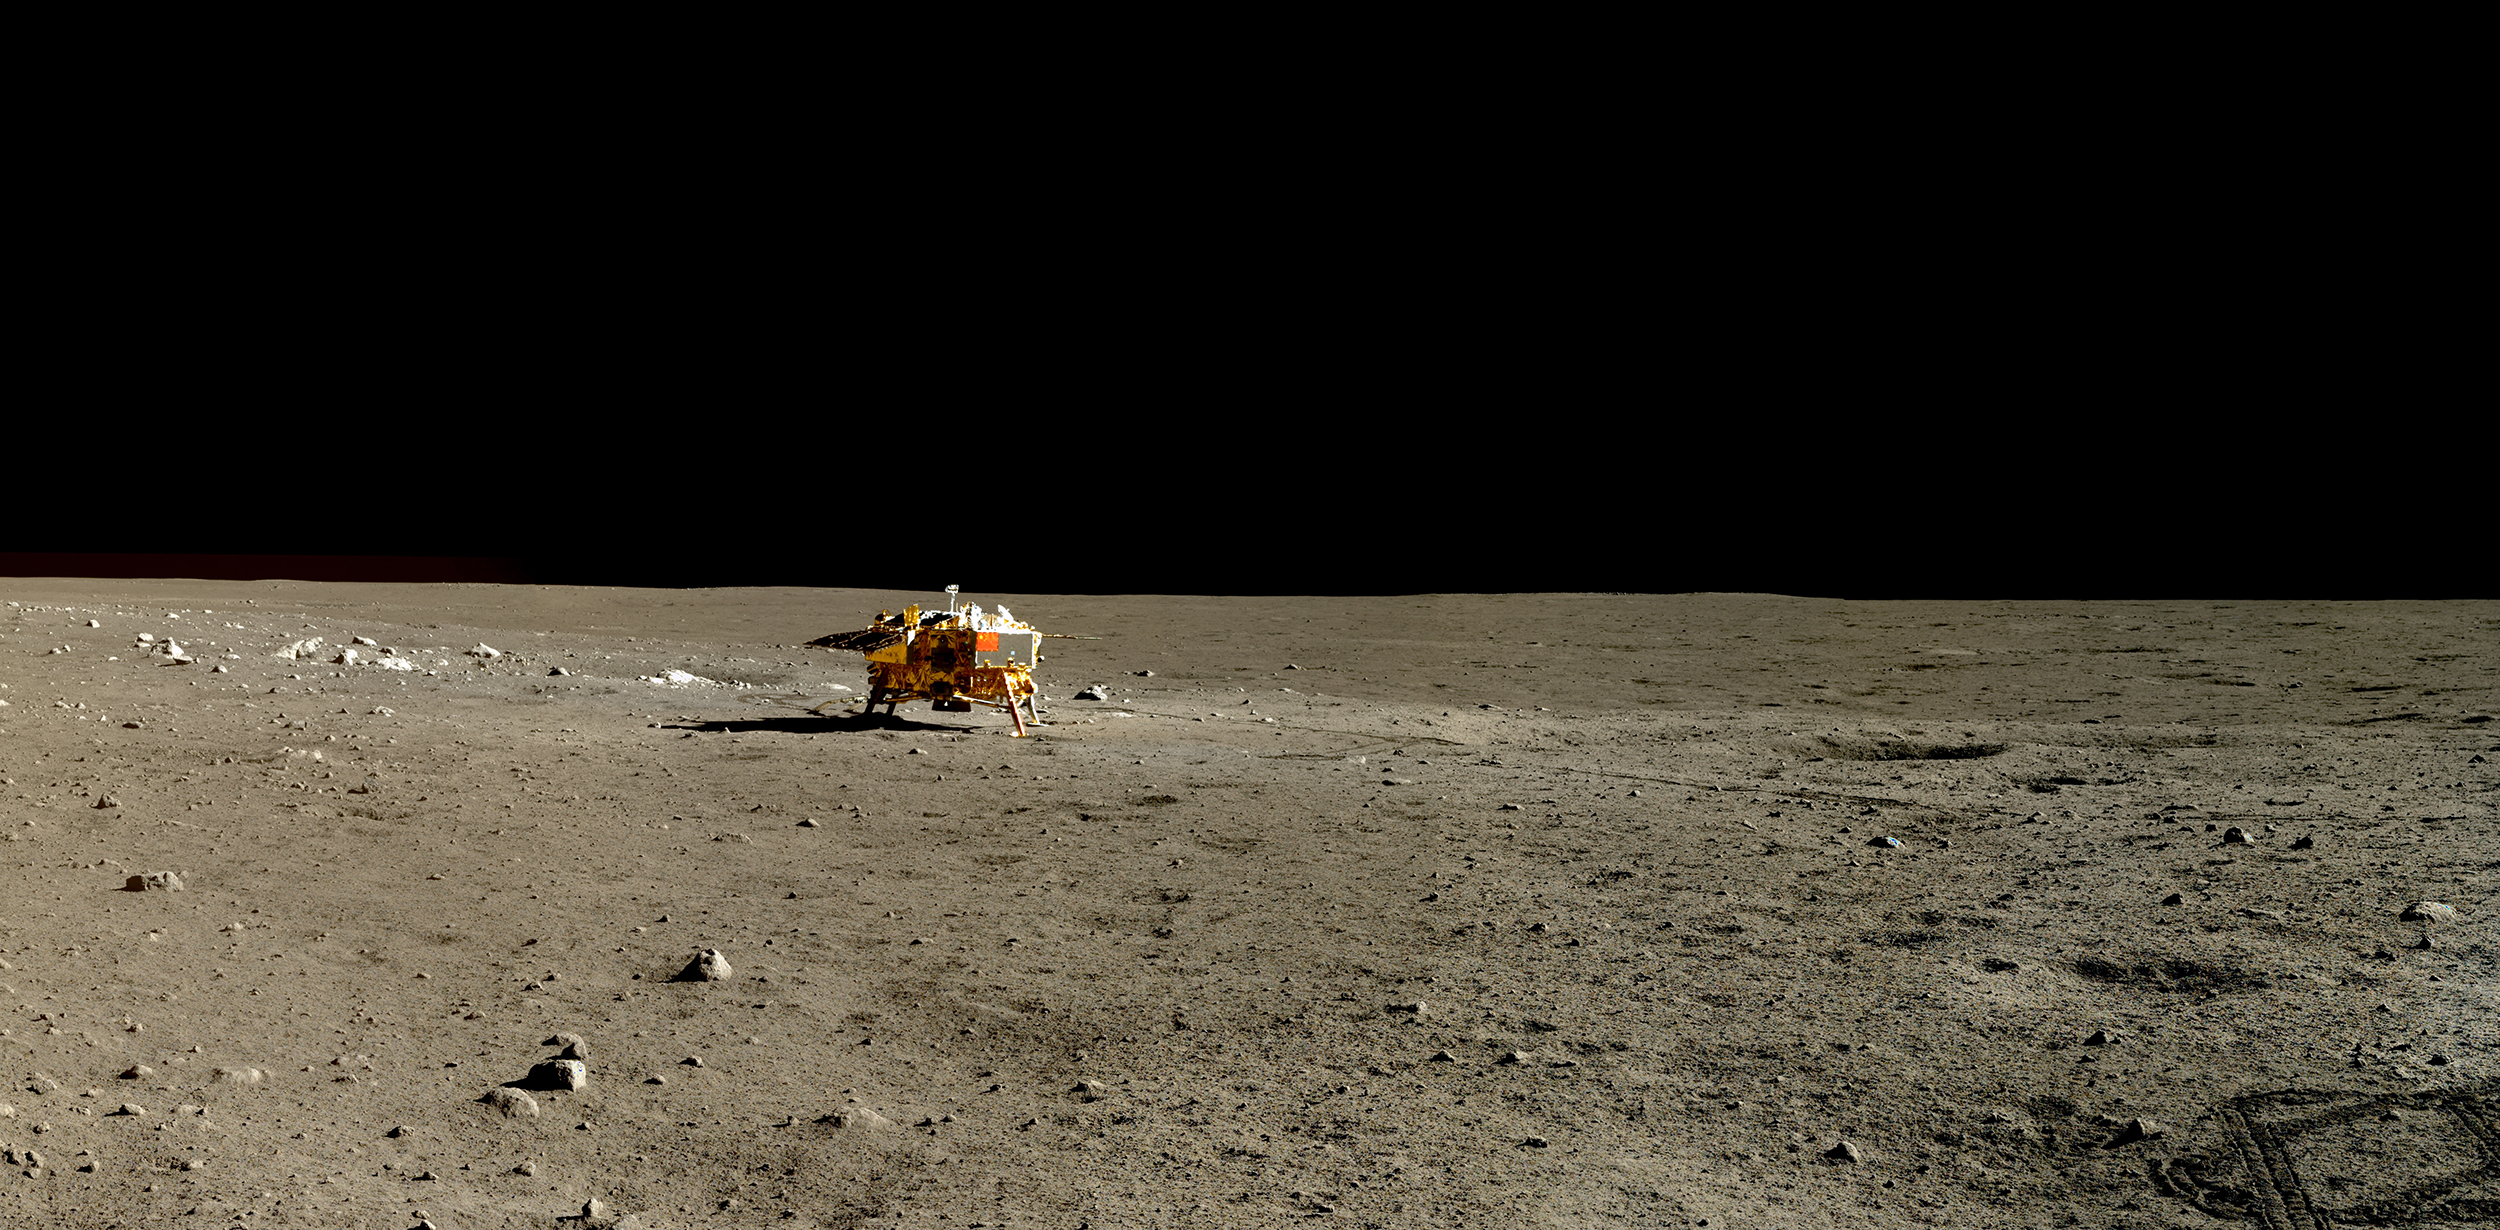 The Yutu rover took the images for this panorama on Jan. 13, 2014, during the rover's second lunar day on the surface, while close to  Pyramid Rock.